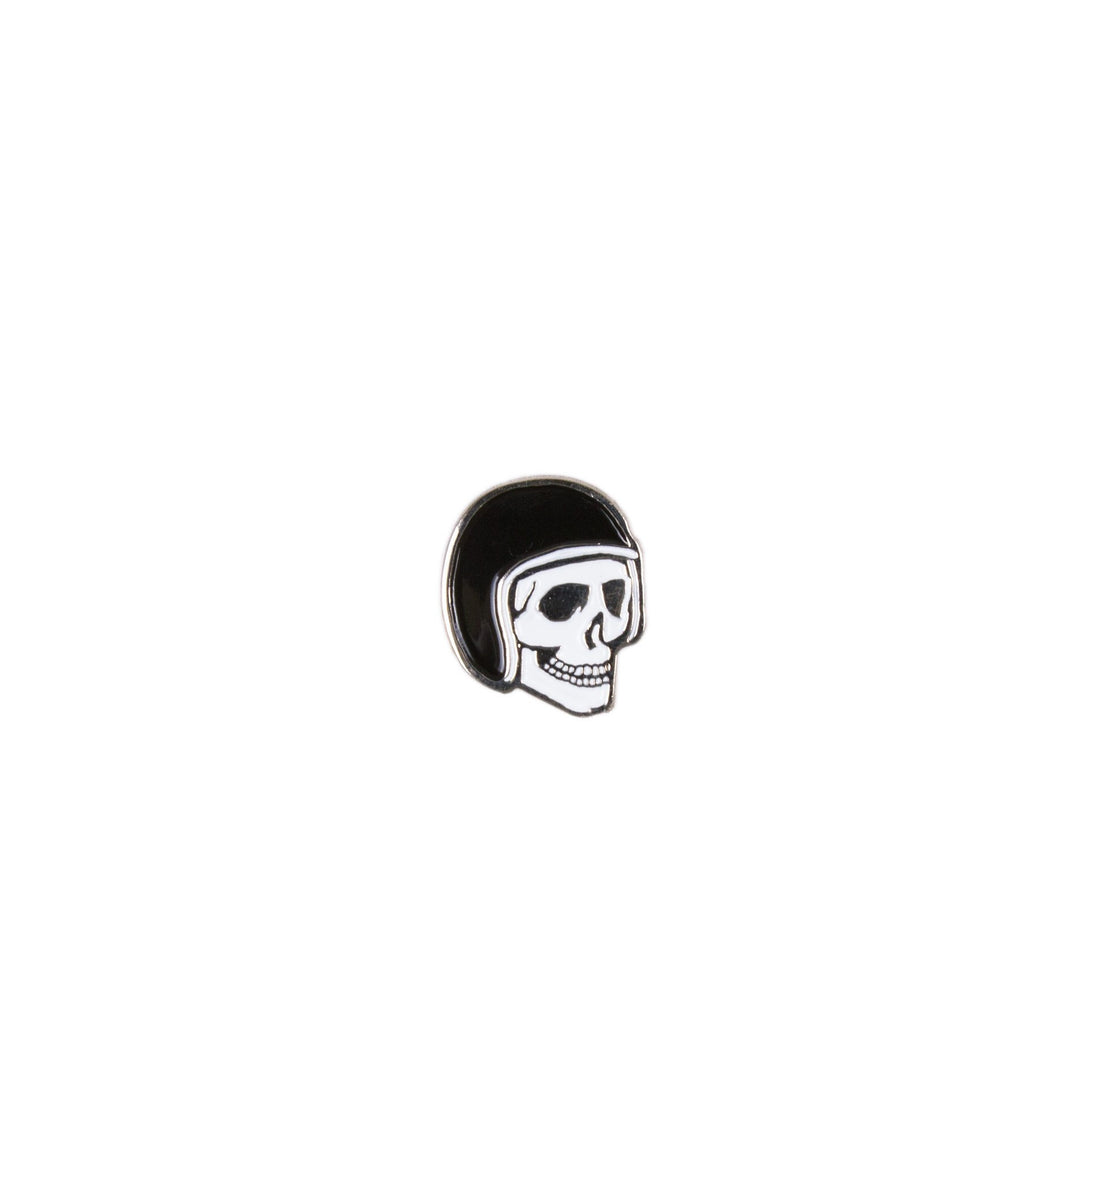 INR Helmut Skull Enamel Pin - Accessories: Pins - Iron and Resin